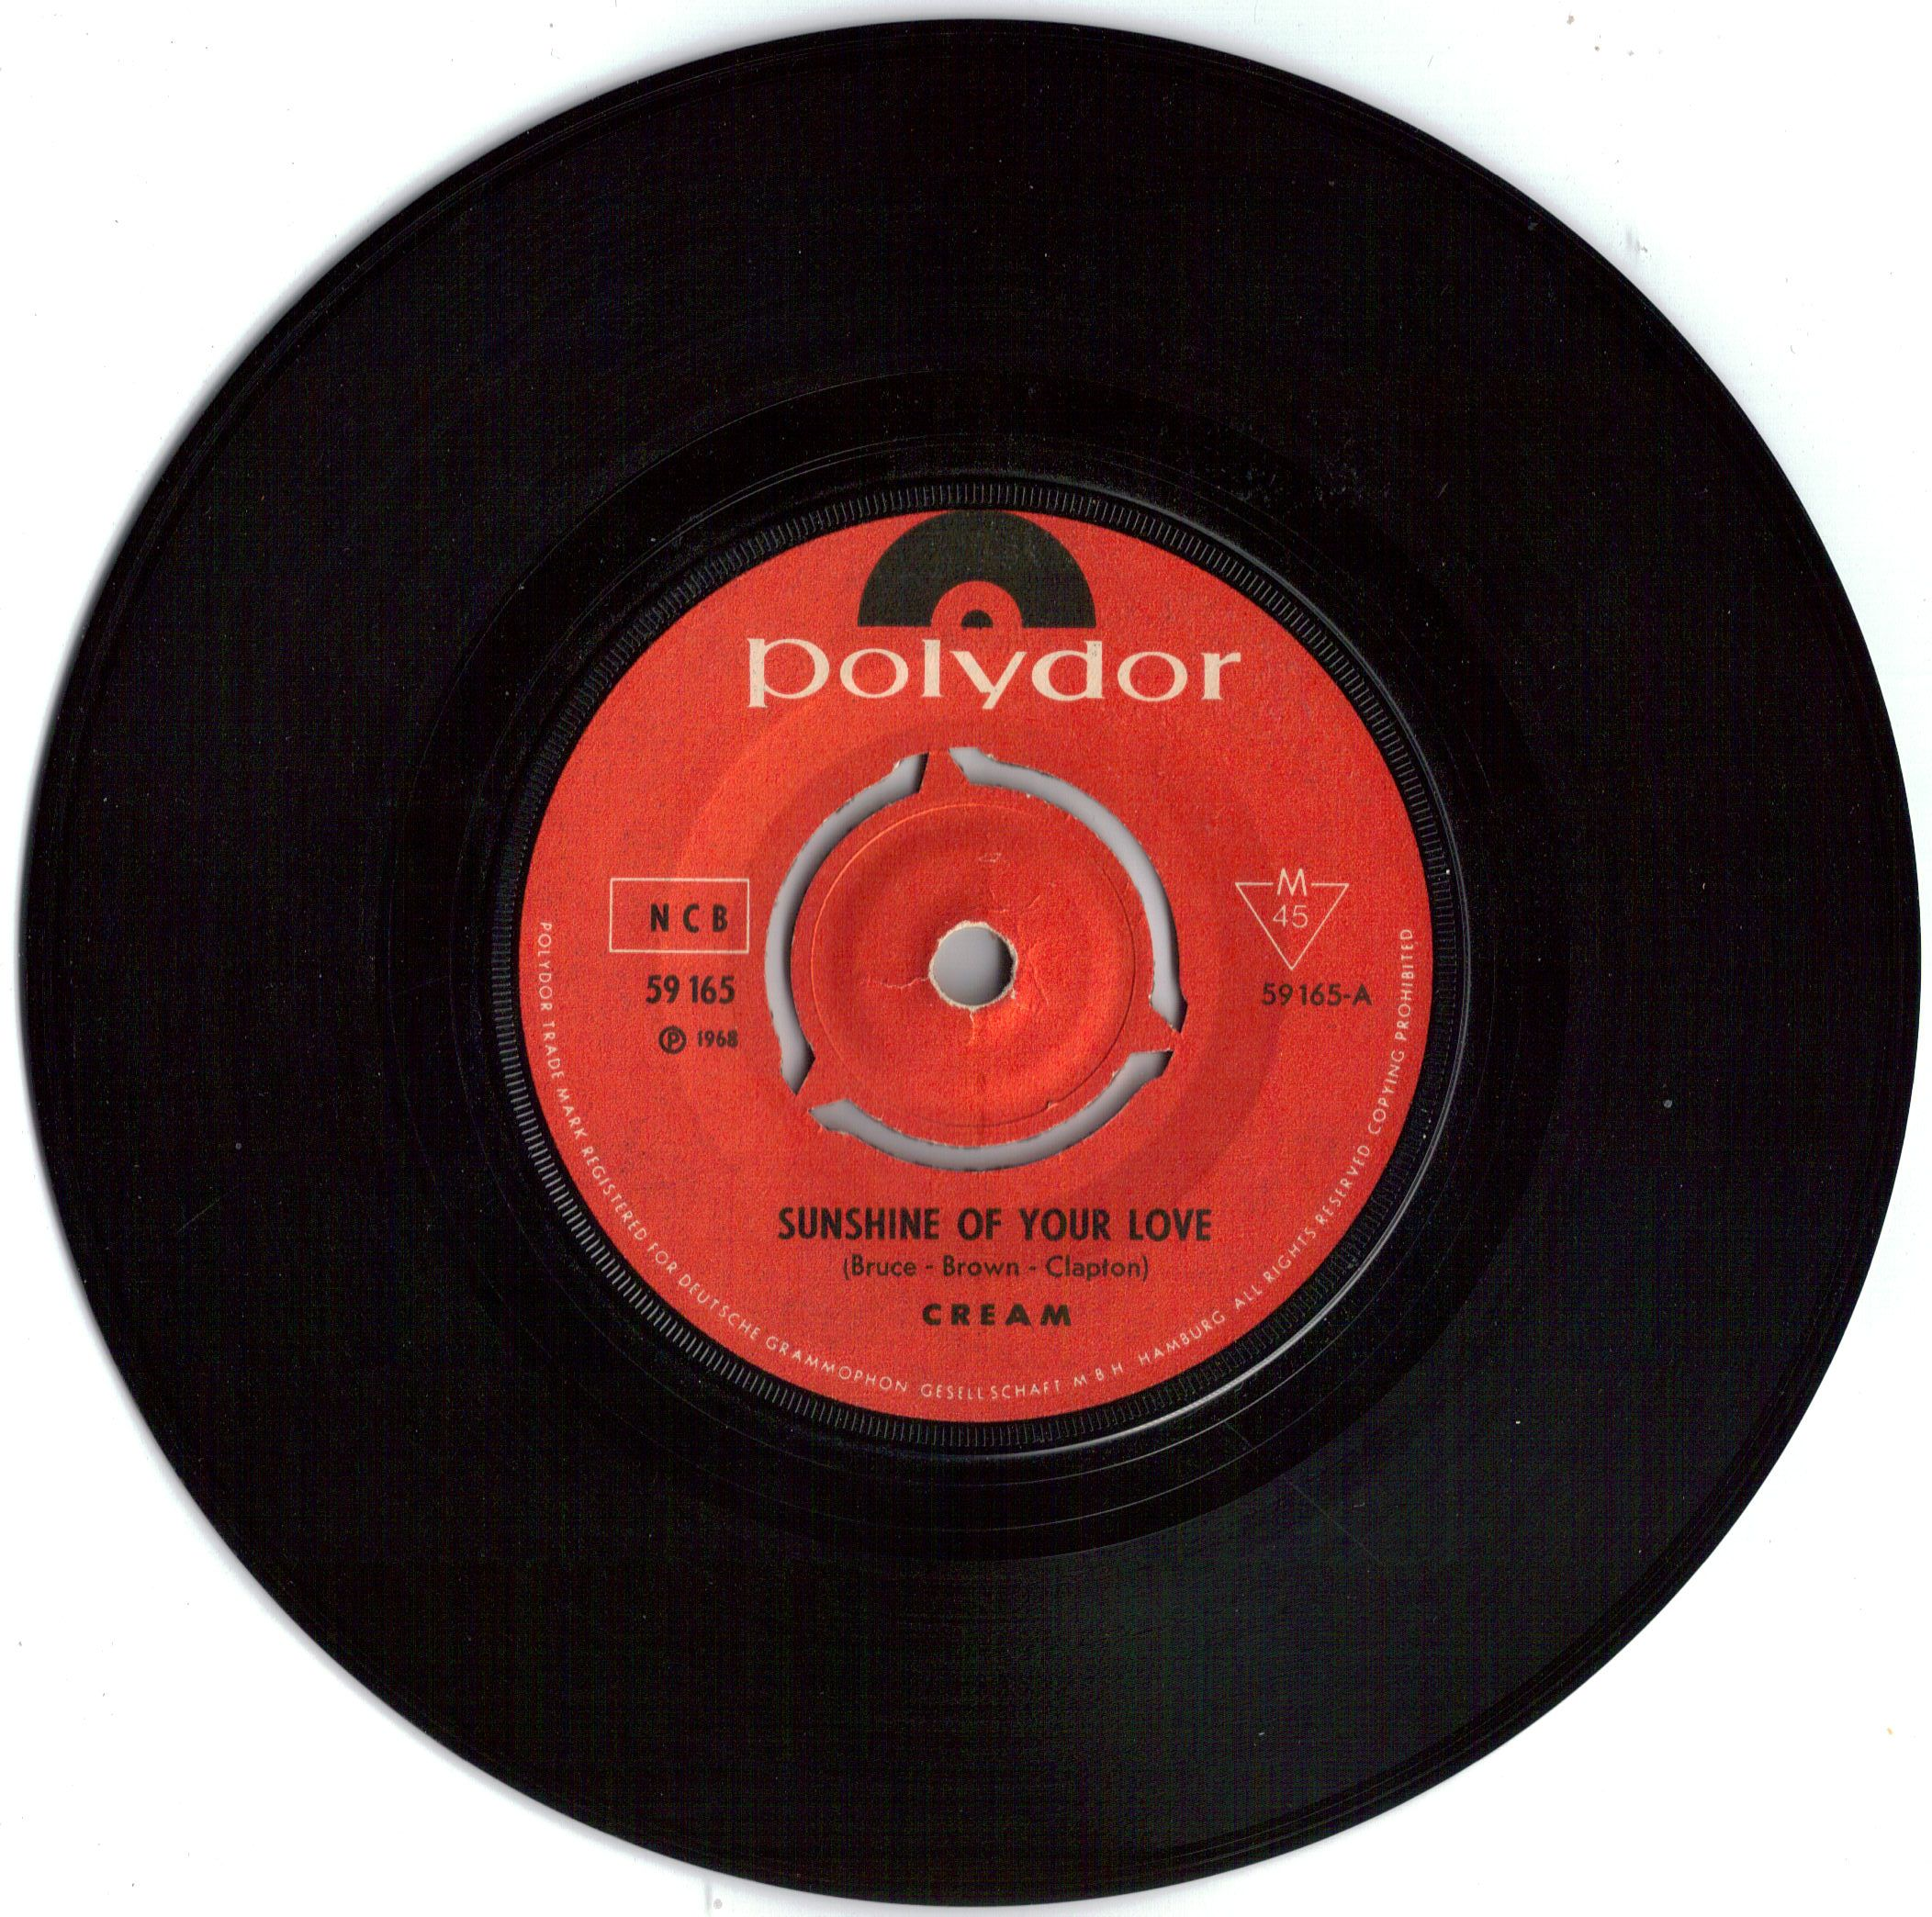 Sunshine of Your Love, The Cream, Polydor, 1968